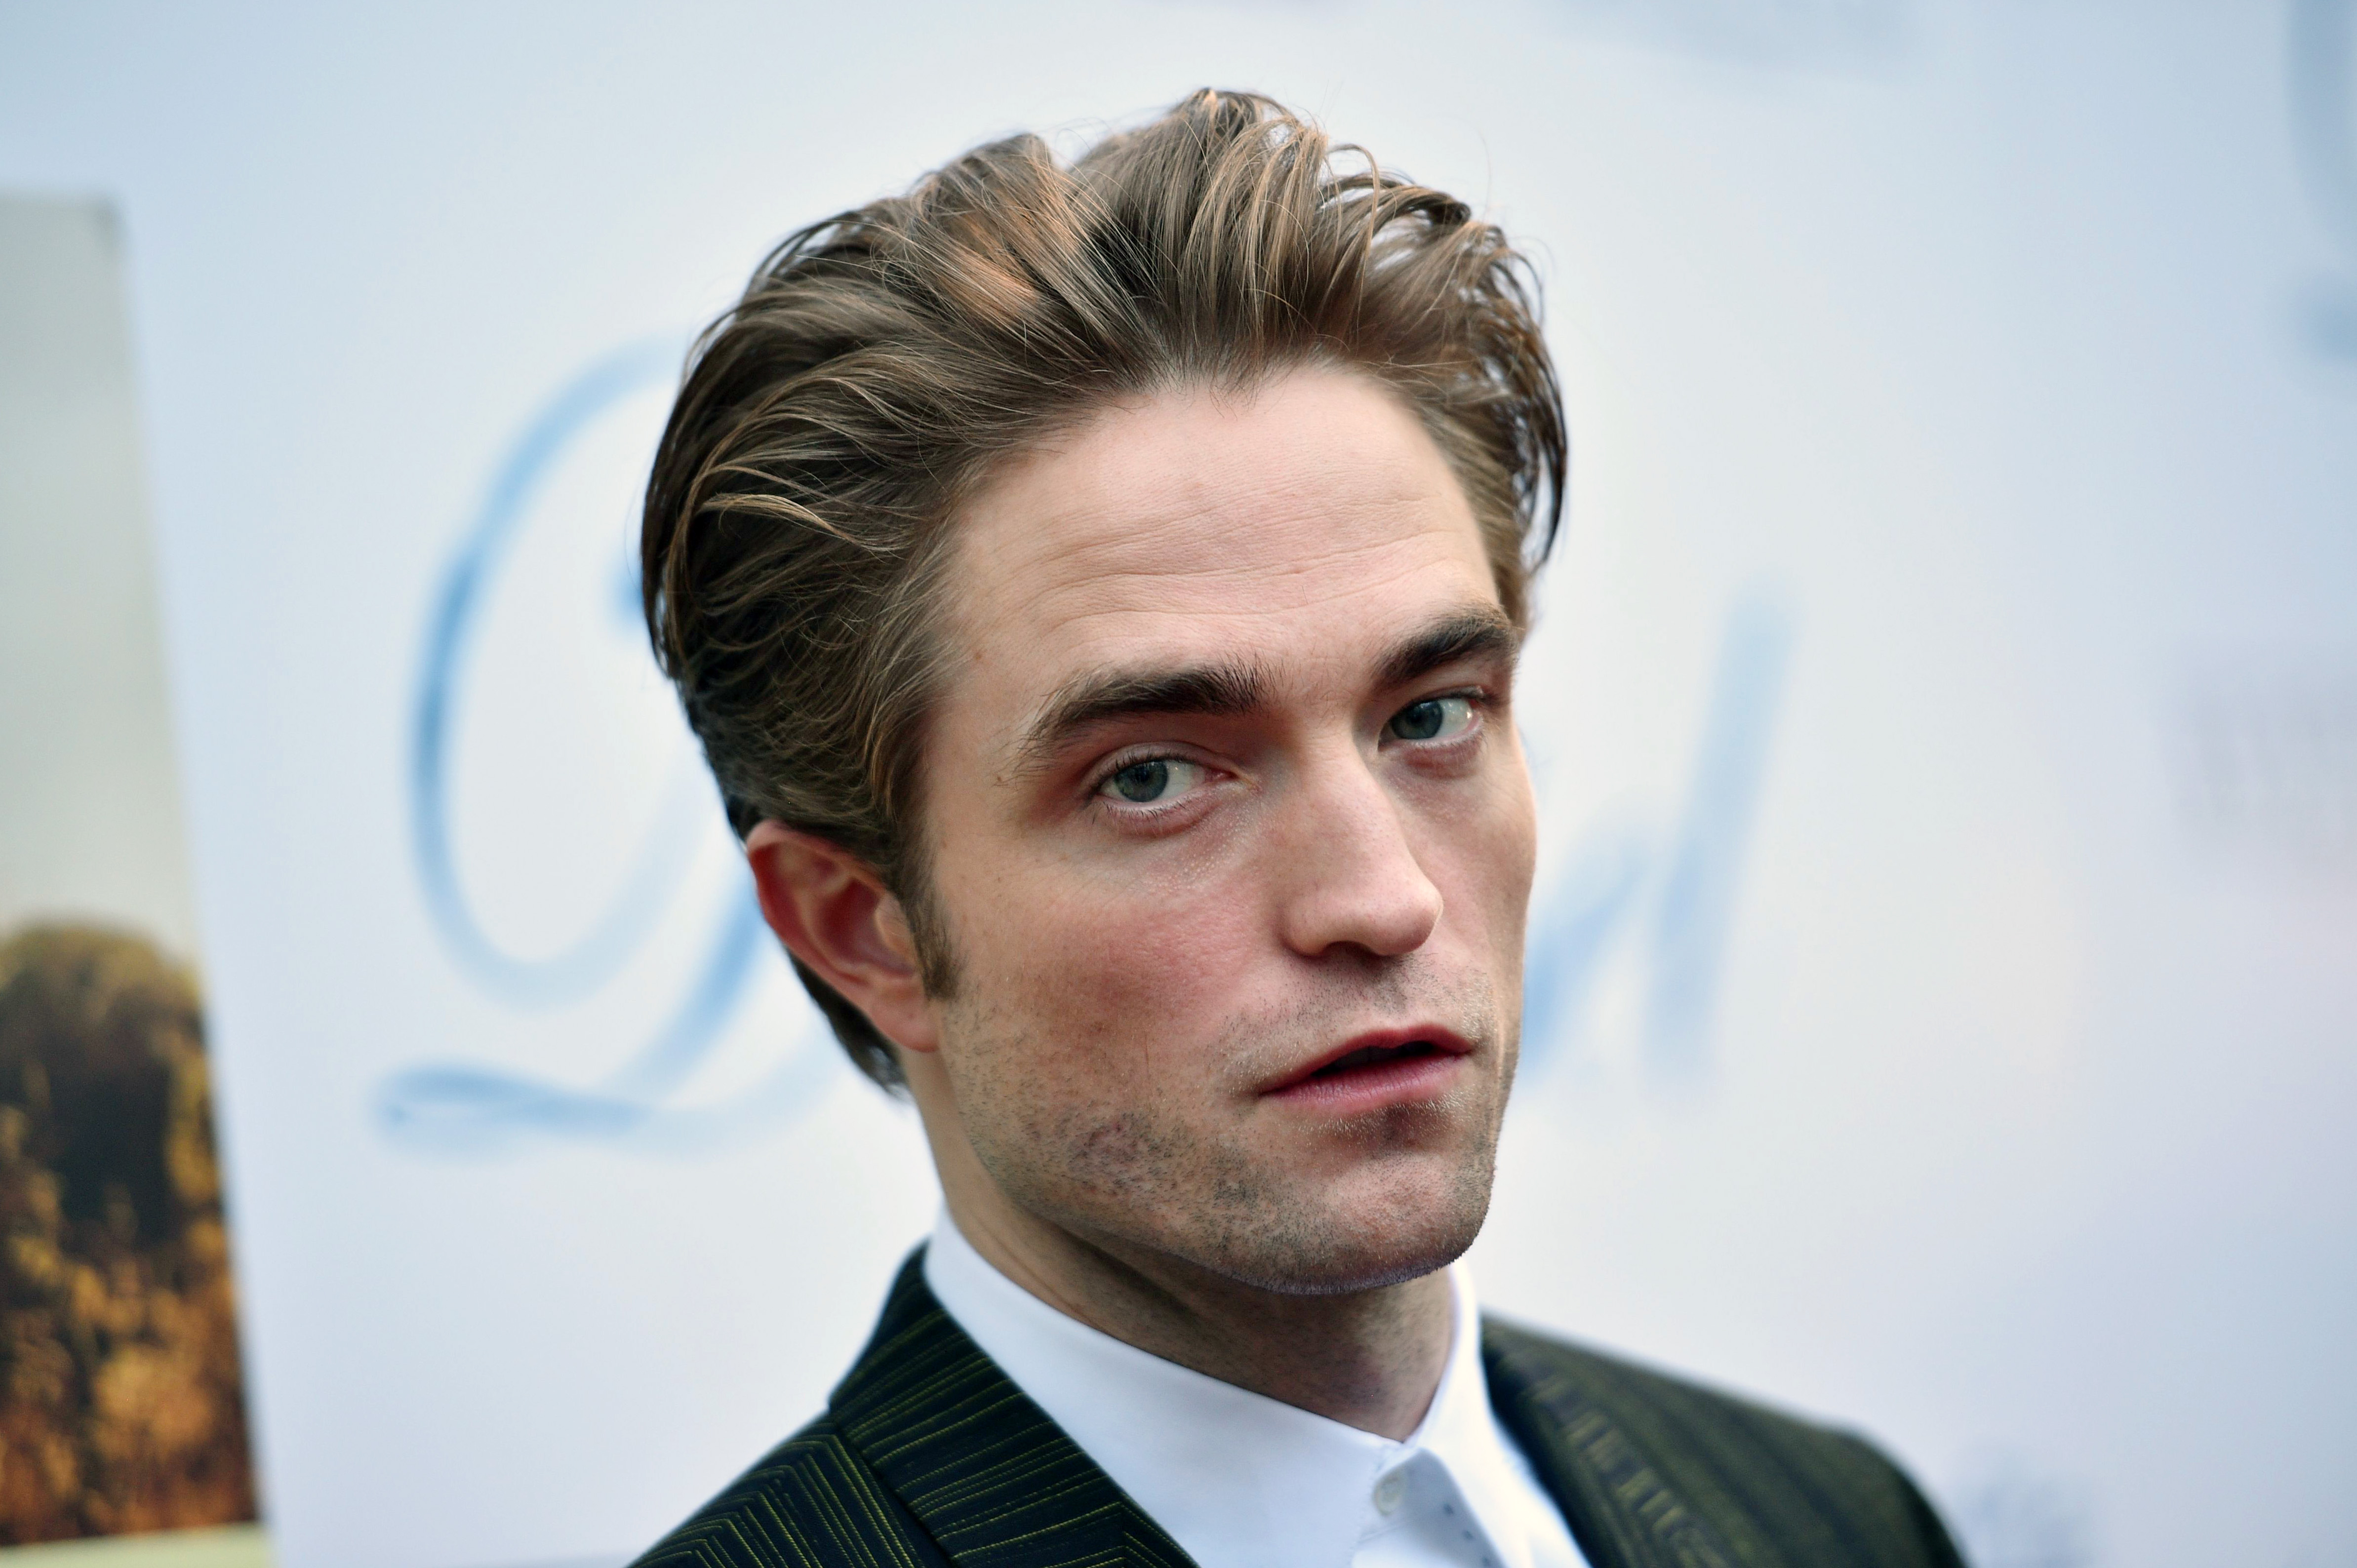 Robert Pattinson Says Batman Voice Inspired by Willem Dafoe in 'The Lighthouse'